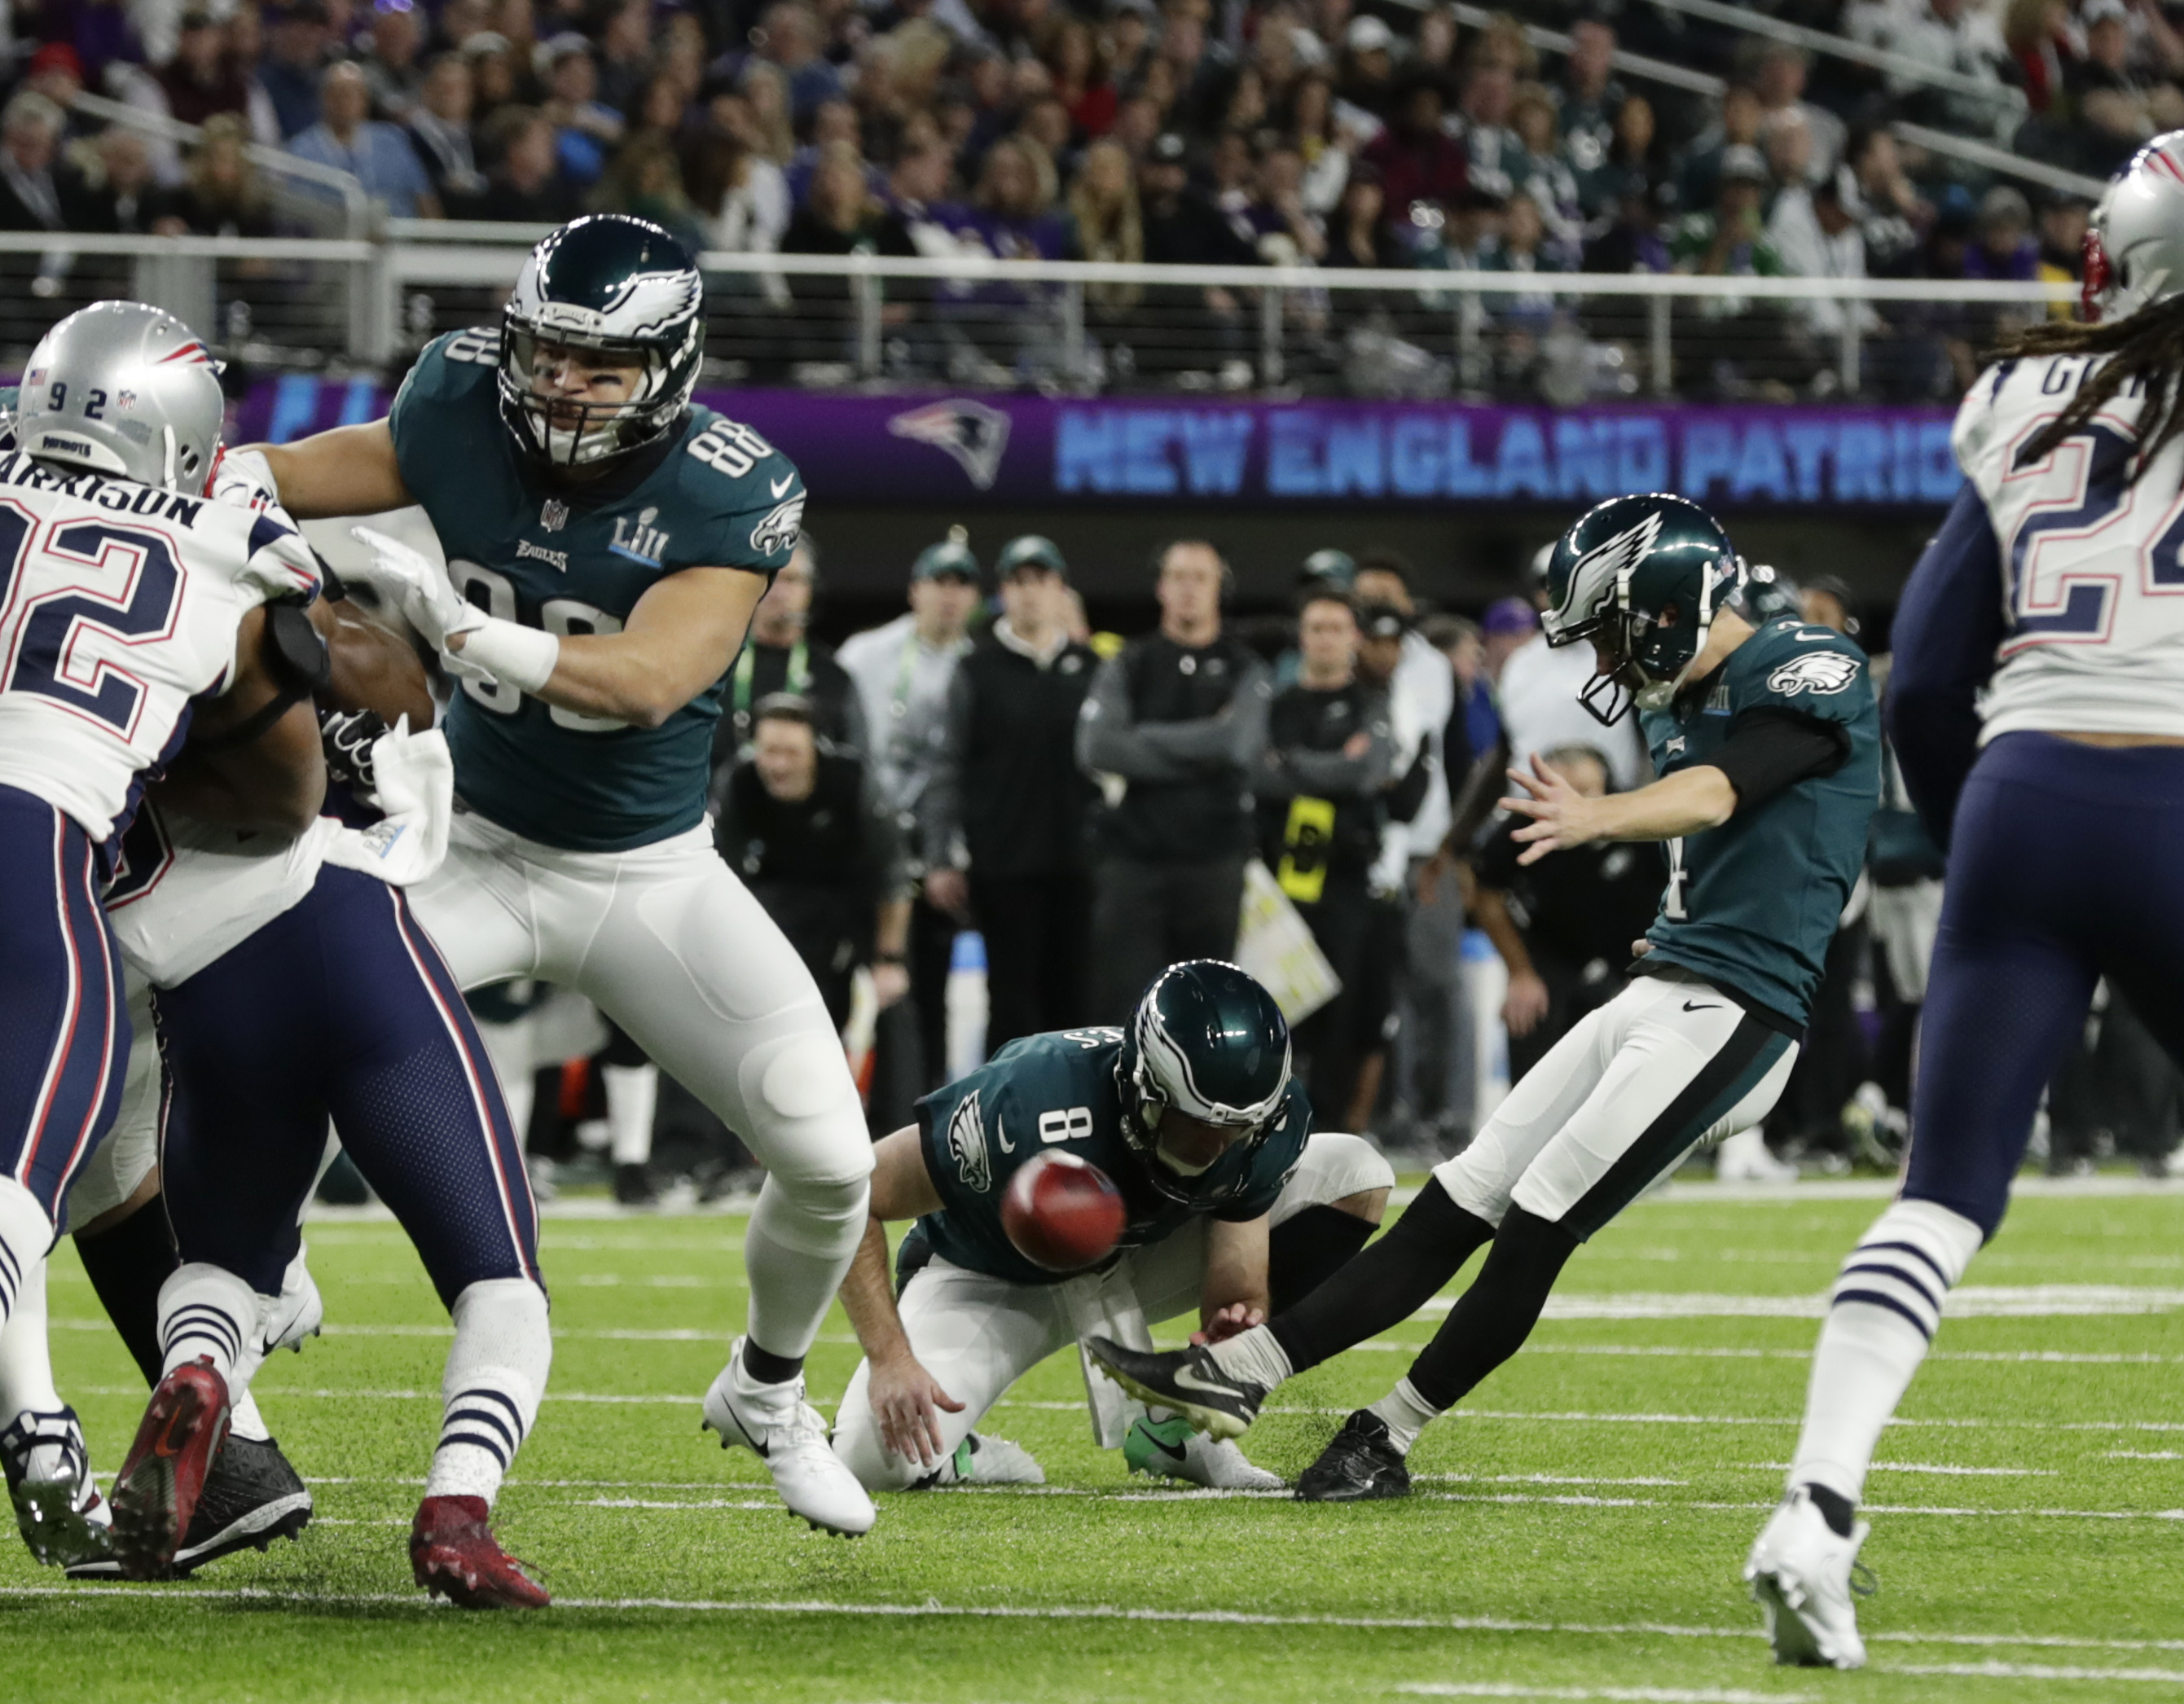 "<div class=""meta image-caption""><div class=""origin-logo origin-image ap""><span>AP</span></div><span class=""caption-text"">Philadelphia Eagles kicker Jake Elliott (4) kicks a field goal against the New England Patriots, during the first half of the NFL Super Bowl 52 football game Sunday, Feb. 4, 2018. (AP Photo/Chris O'Meara)</span></div>"